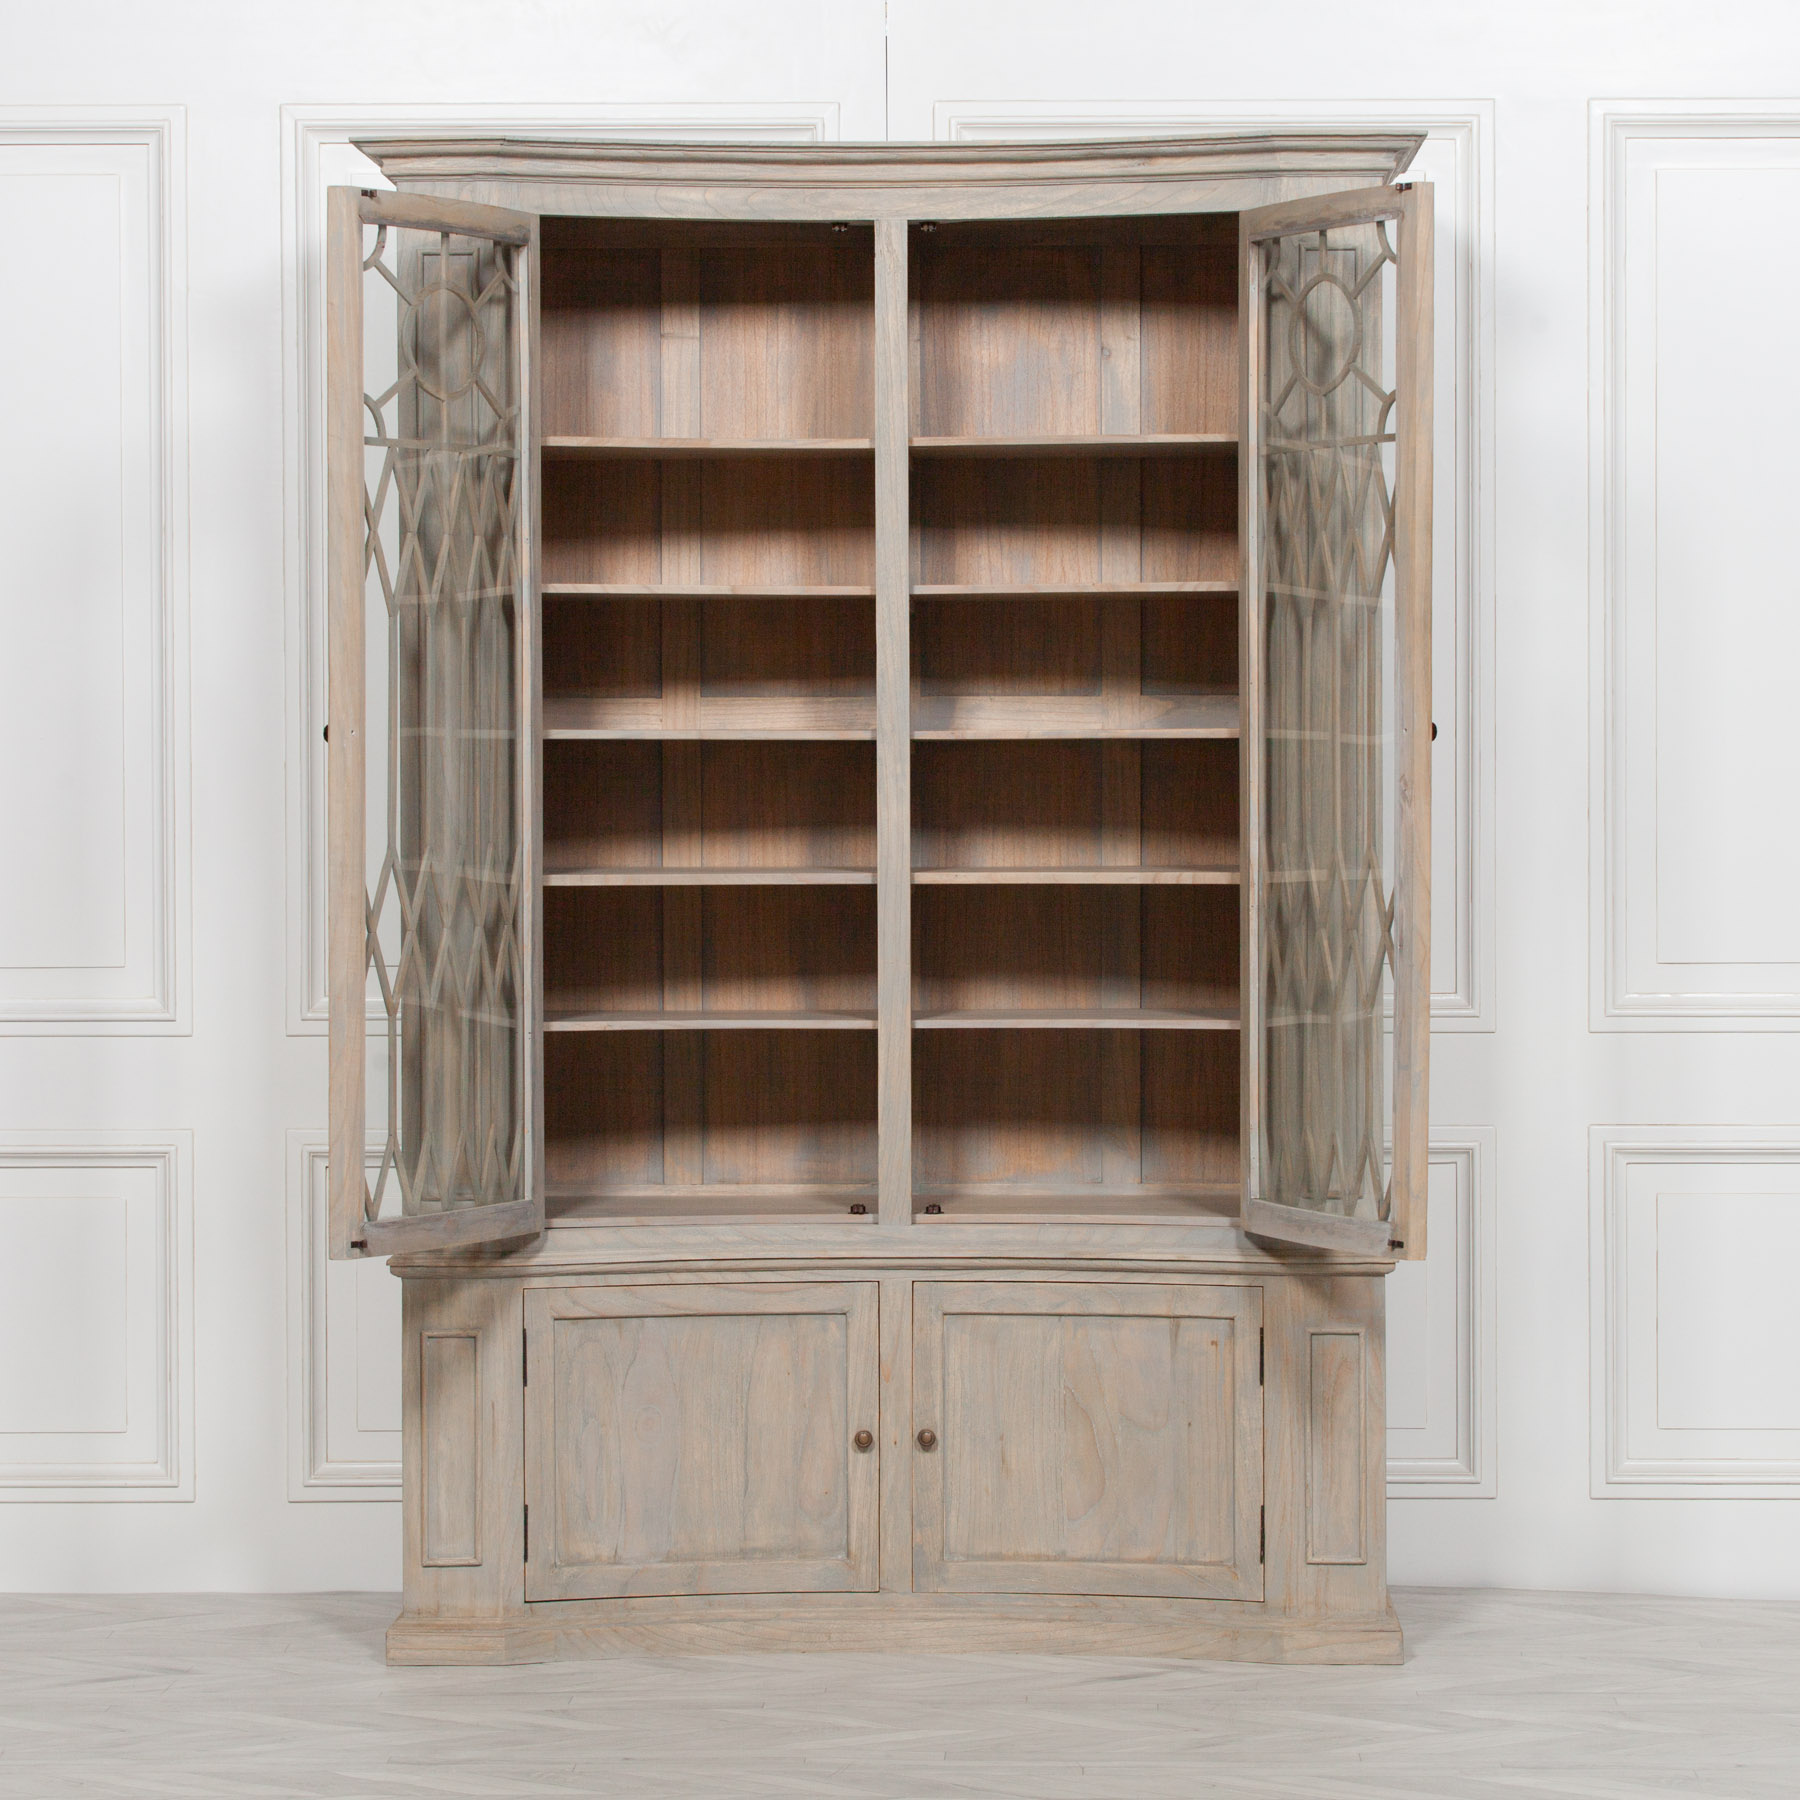 Concave Wooden Display Cabinet